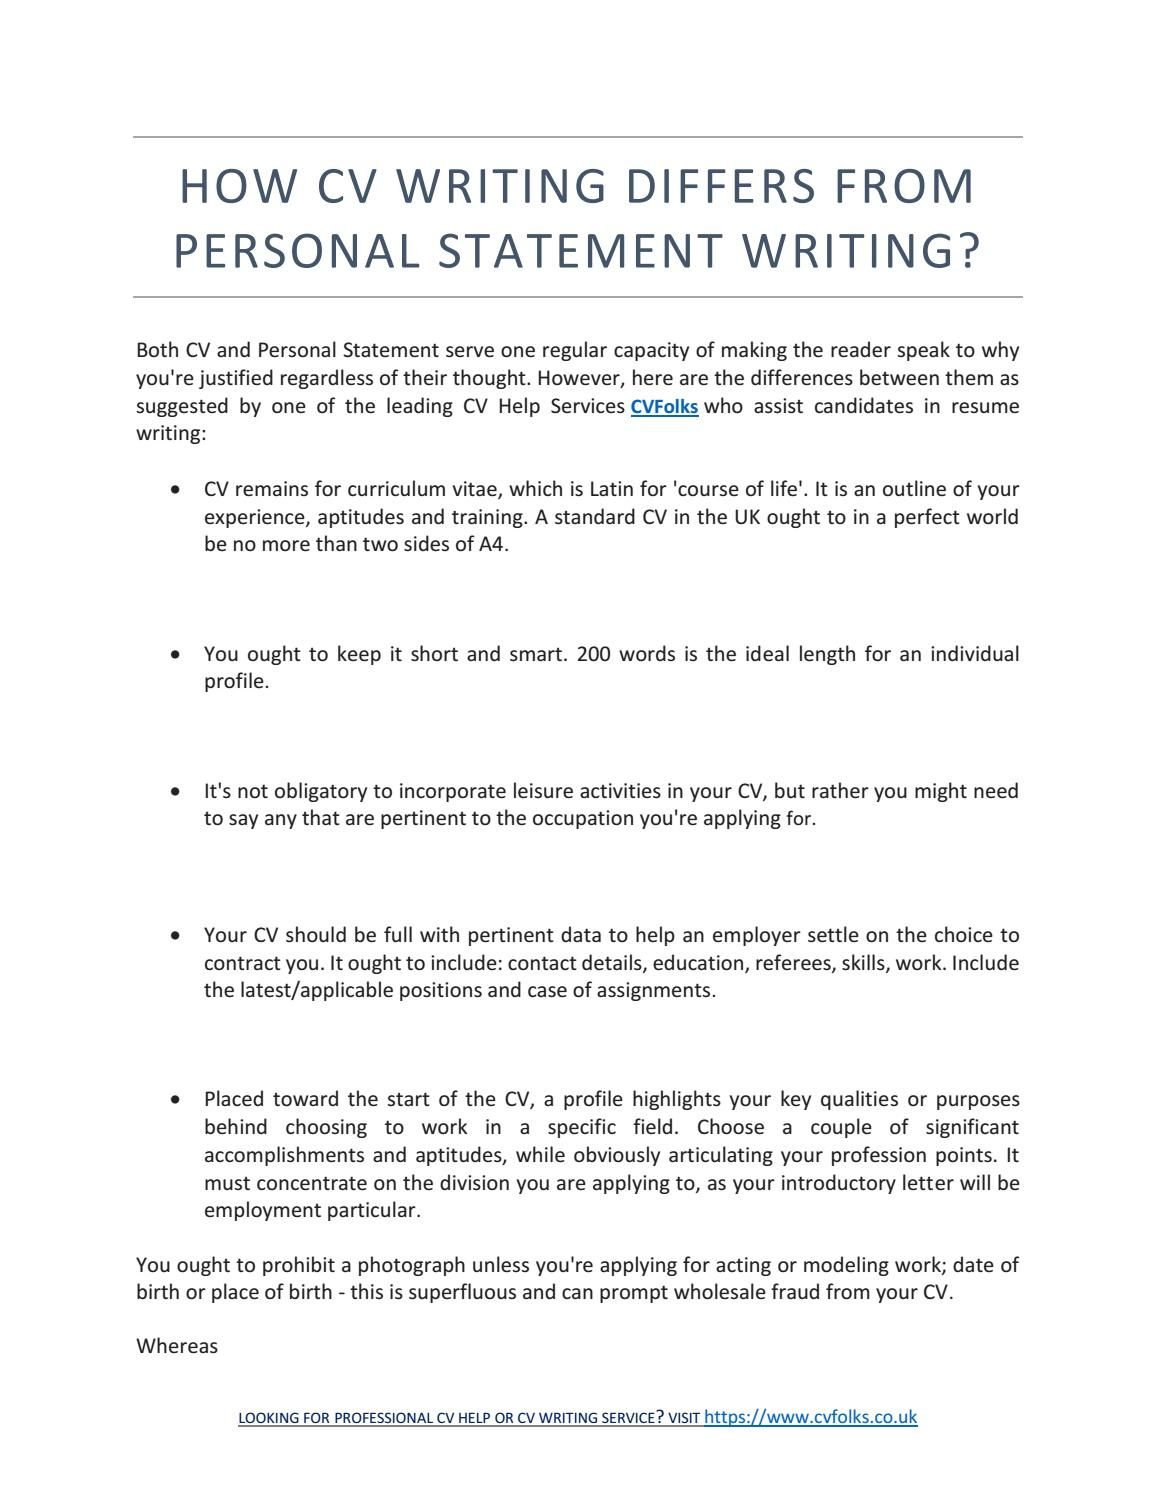 How CV Writing Differs From Personal Statement Writing | Pinterest ...